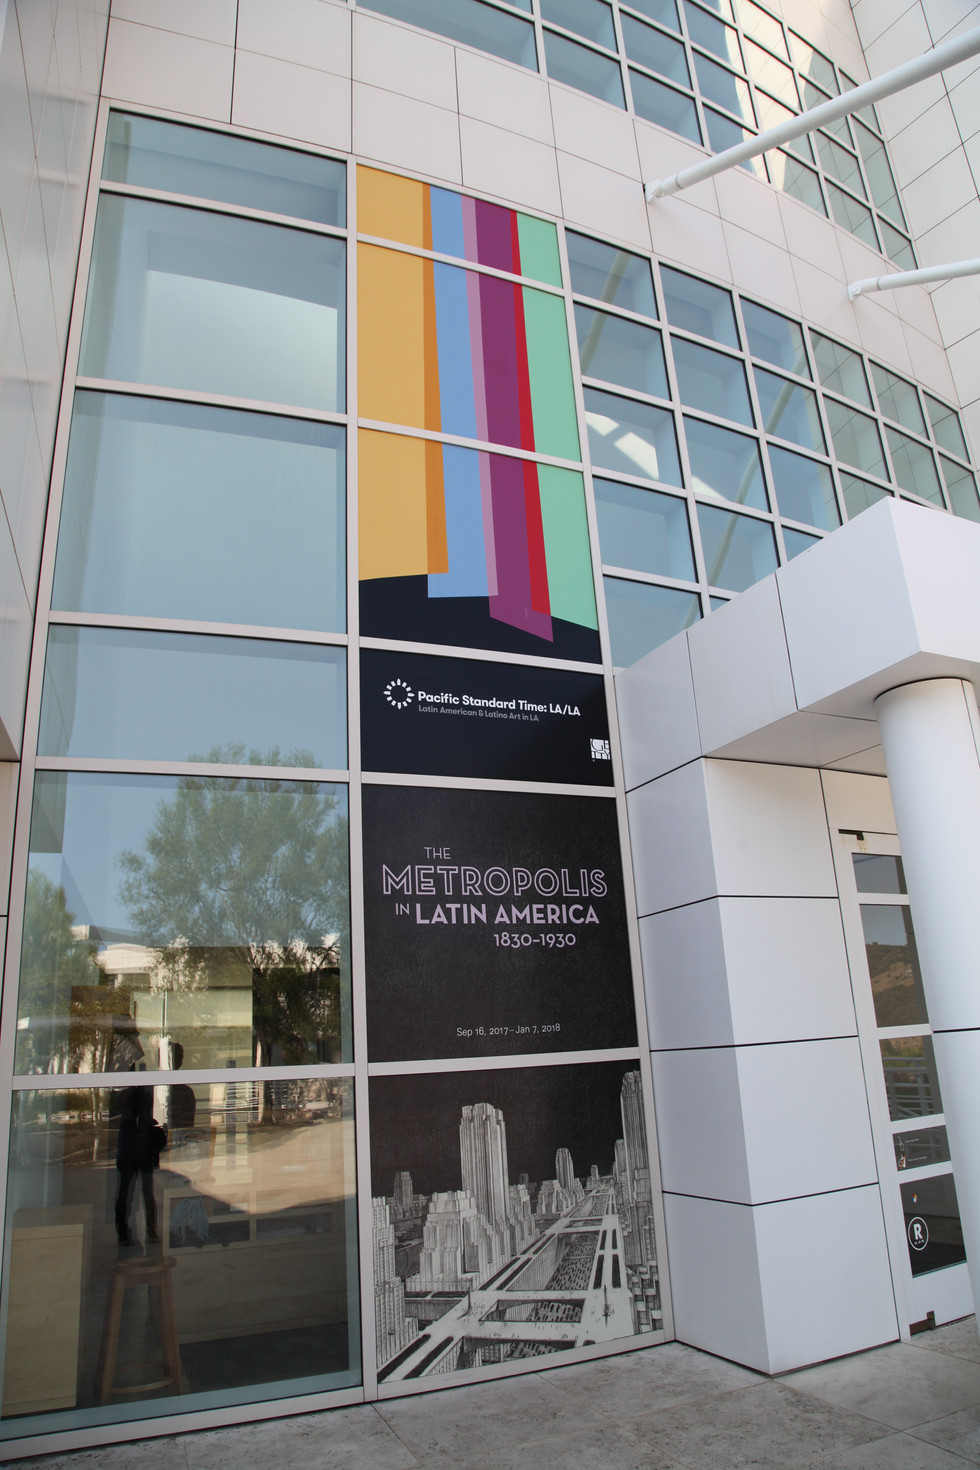 Getty Research Institute facade branded with the PST LA/LA and exhibition graphic identity.